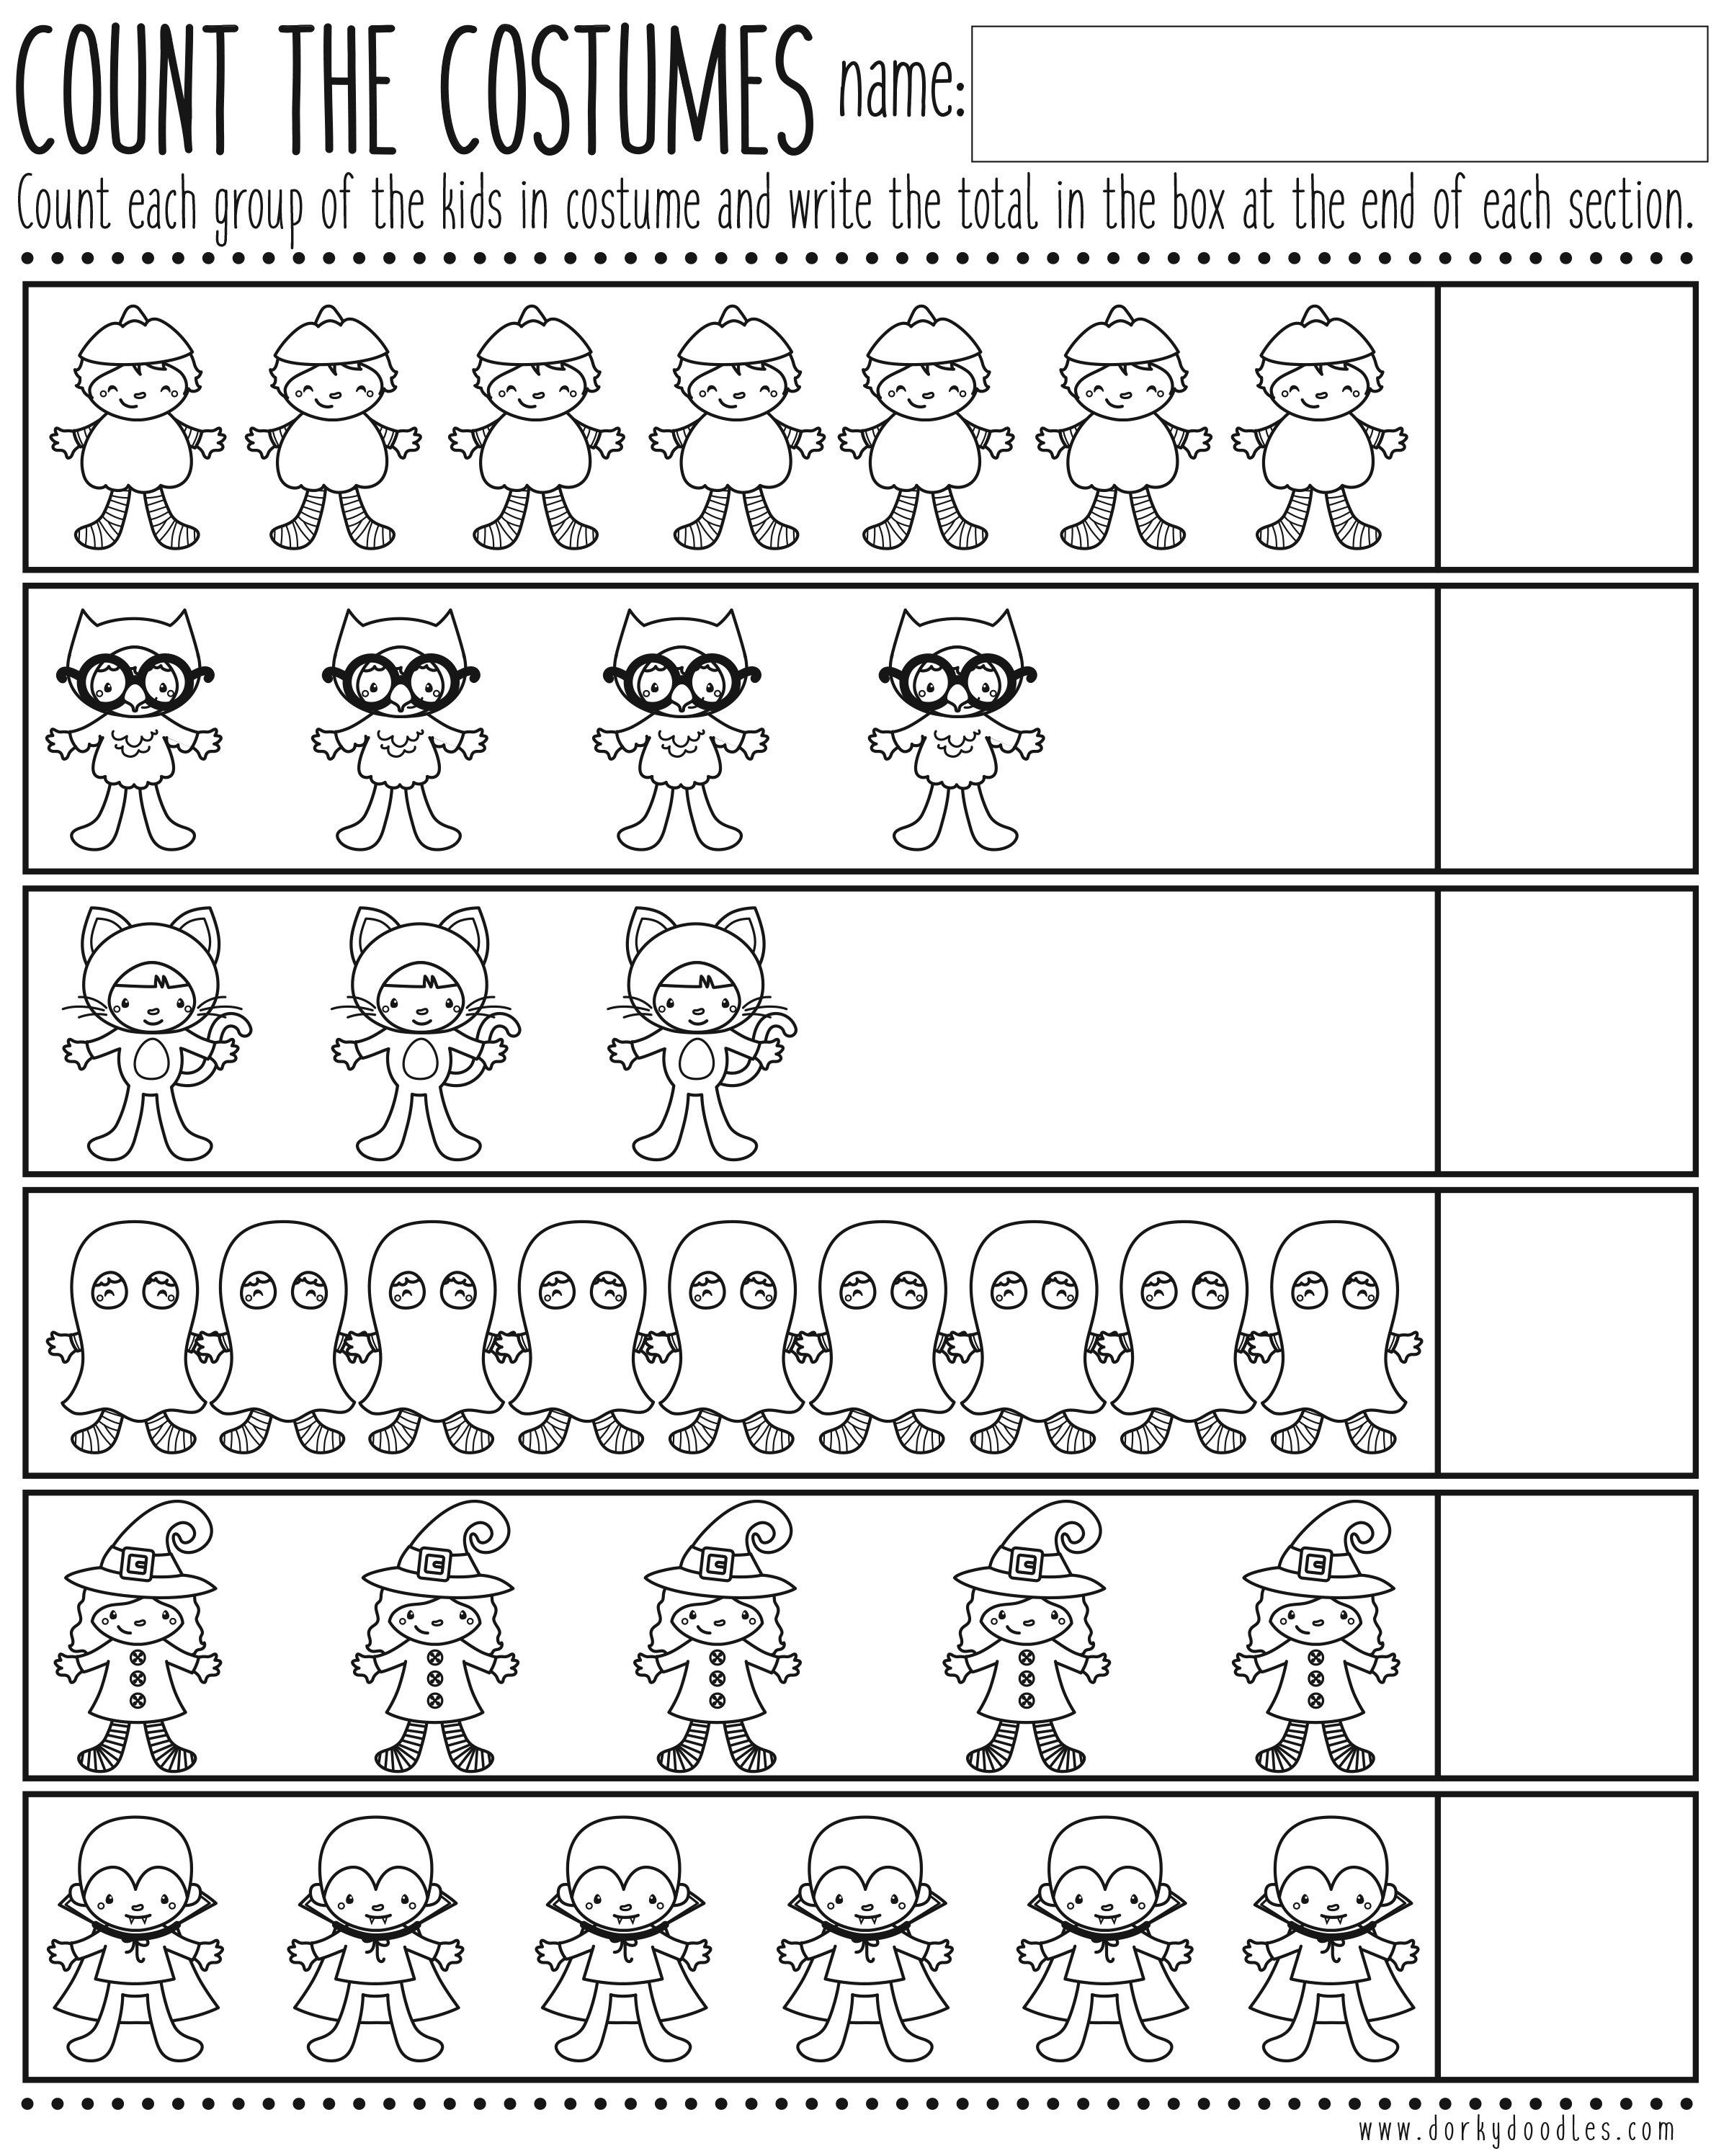 Count The Costumes Printable Worksheet